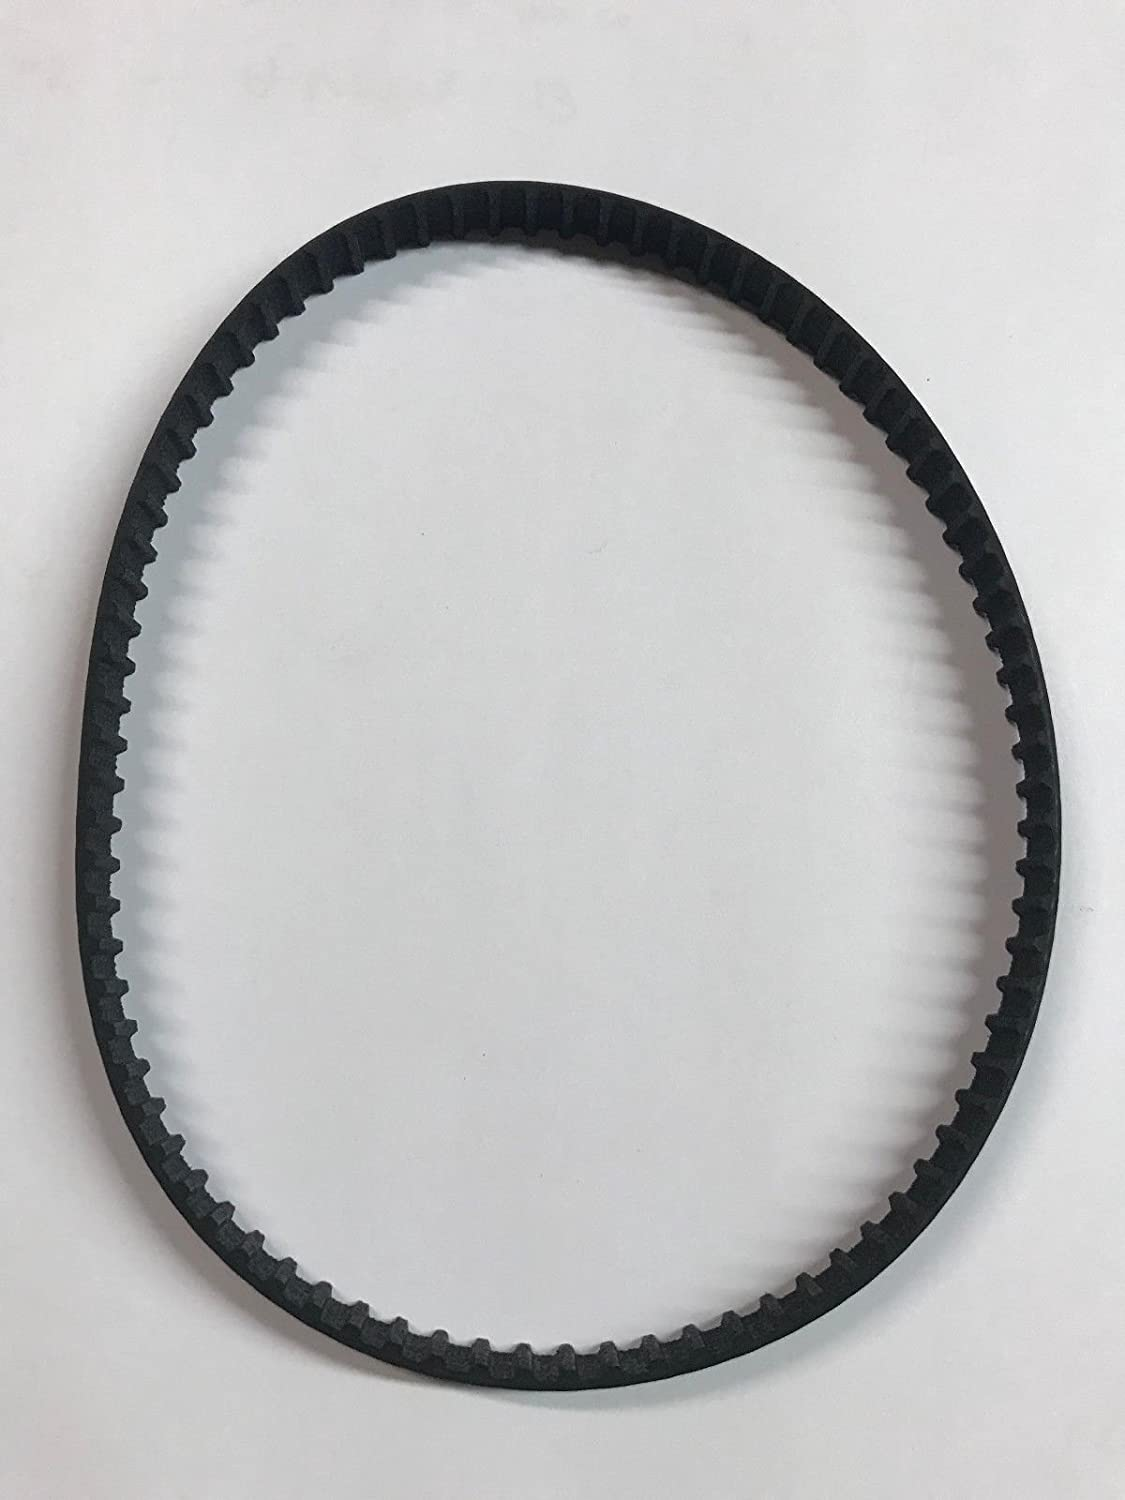 NEW Replacement BELT for Hamilton Beach Food Processor Model 707-1